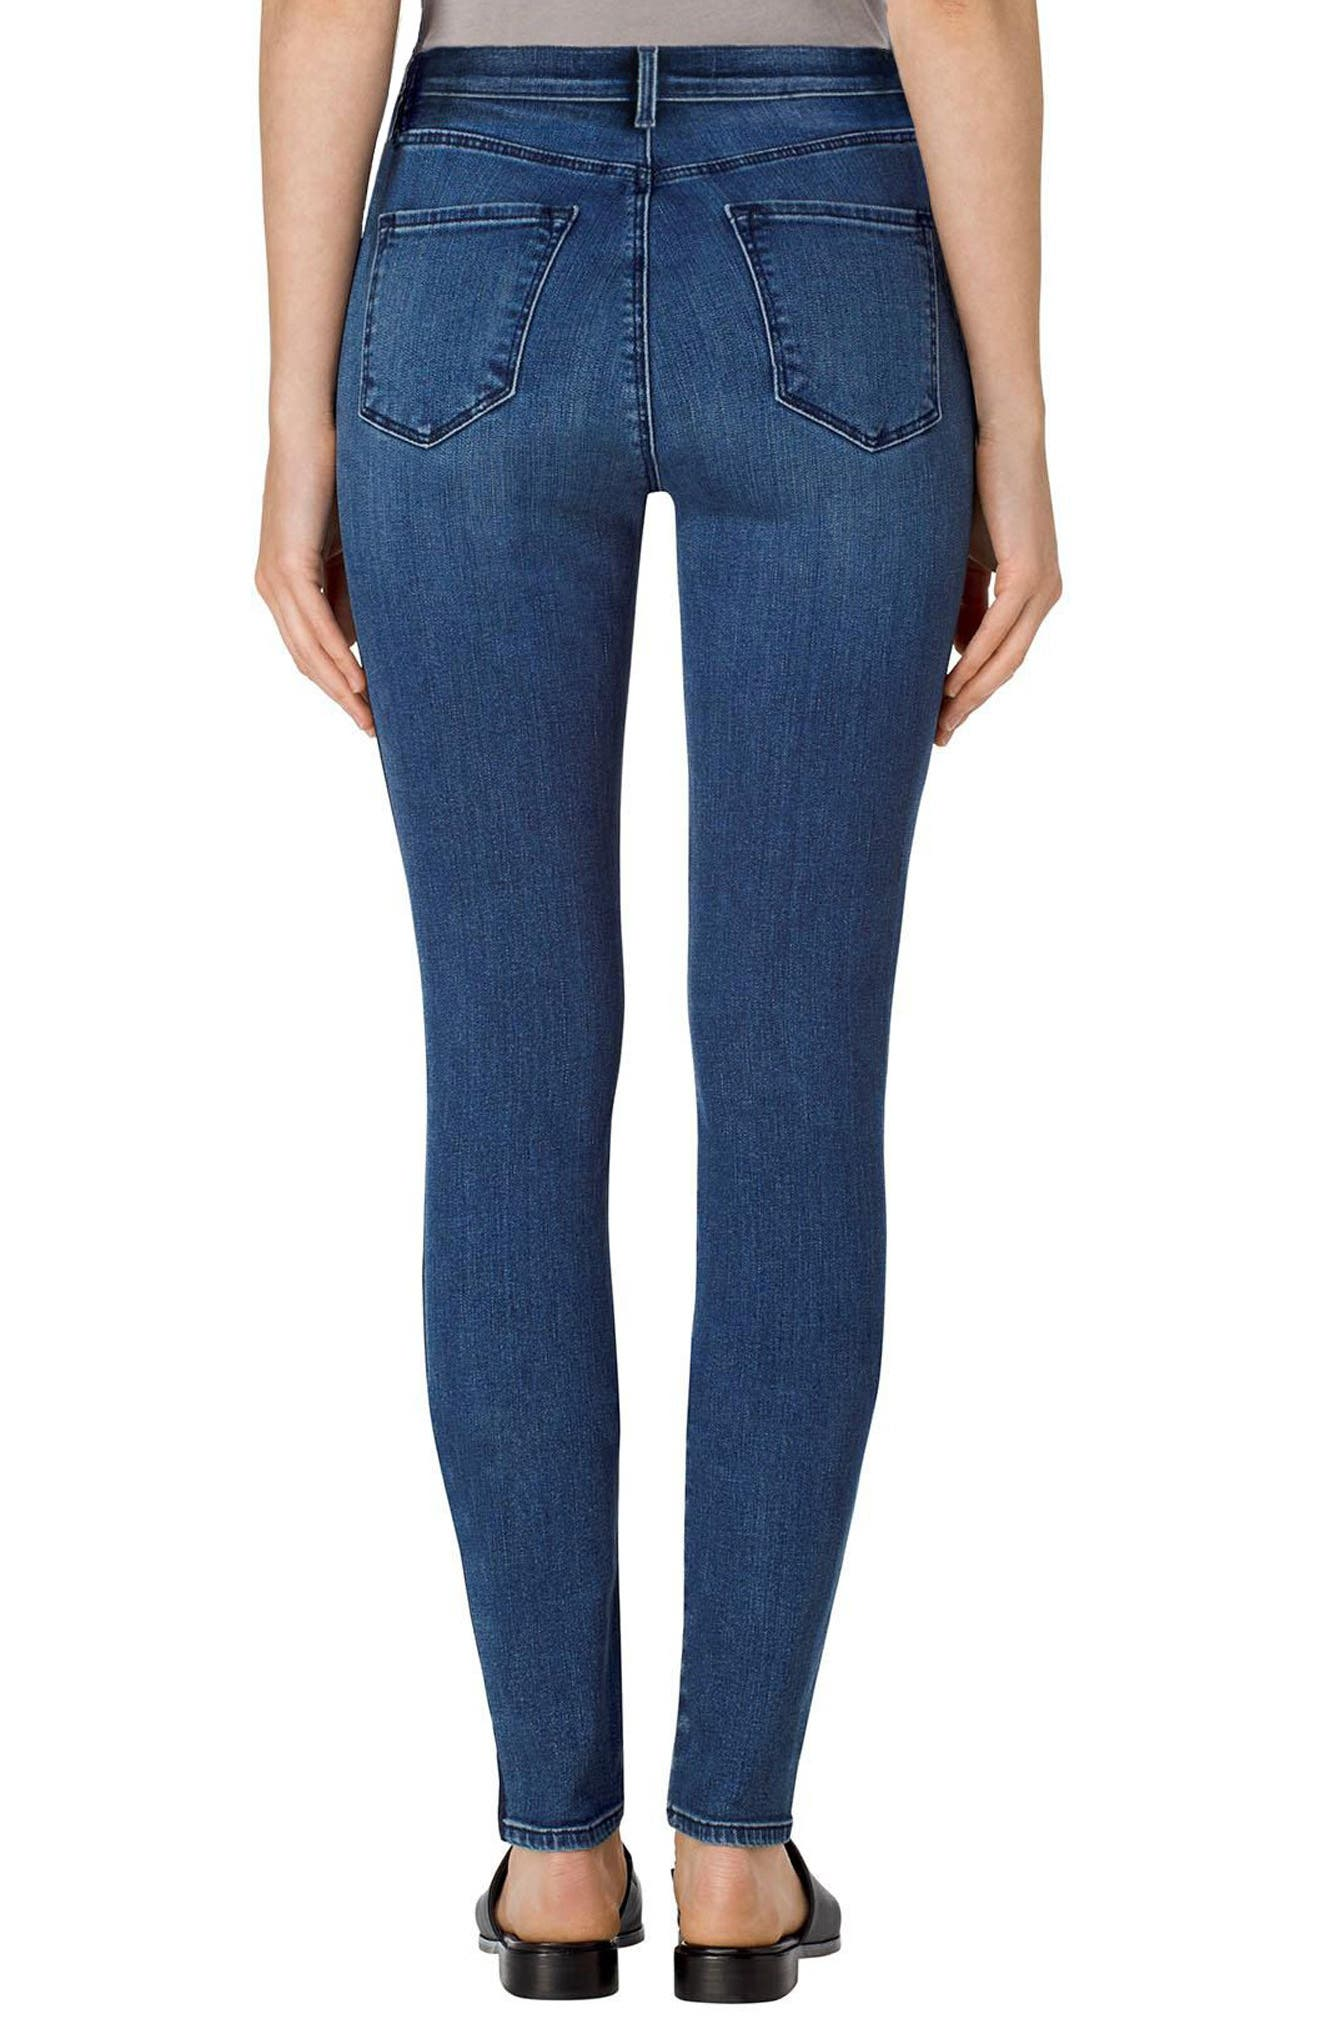 Maria High Rise Skinny Jeans,                             Alternate thumbnail 2, color,                             470